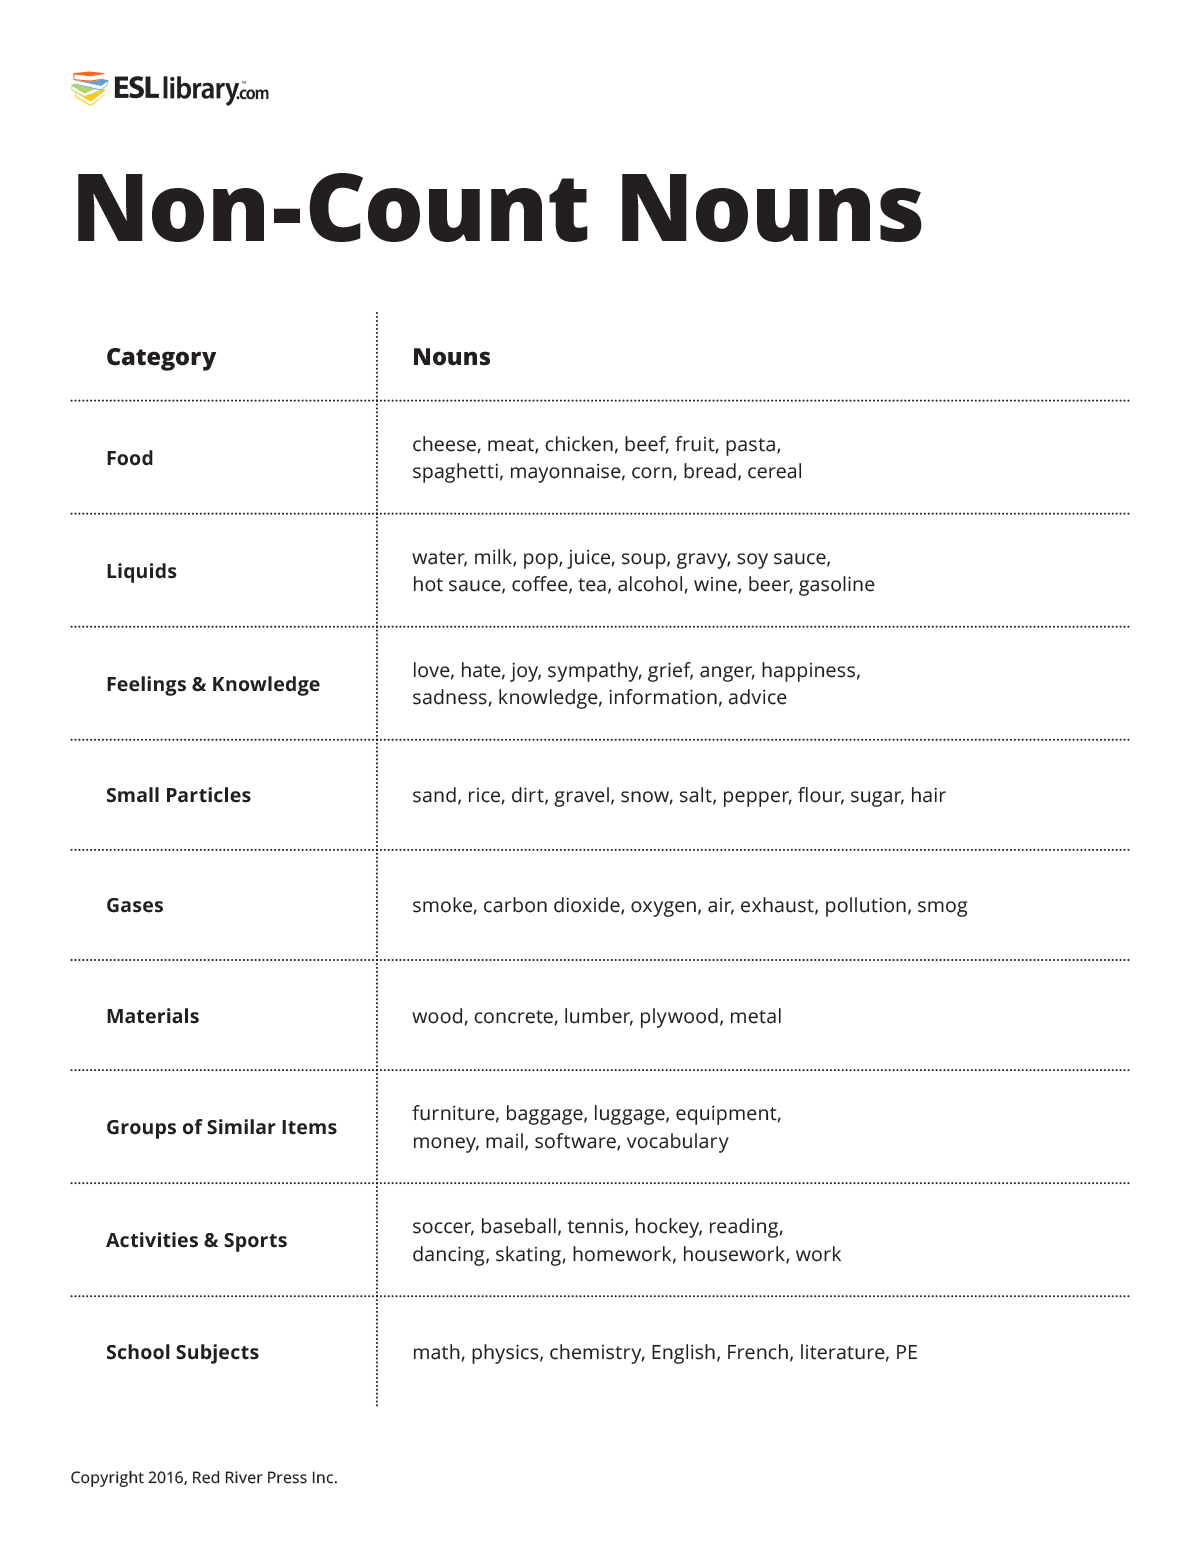 Screenshot of Non-Count Nouns resource